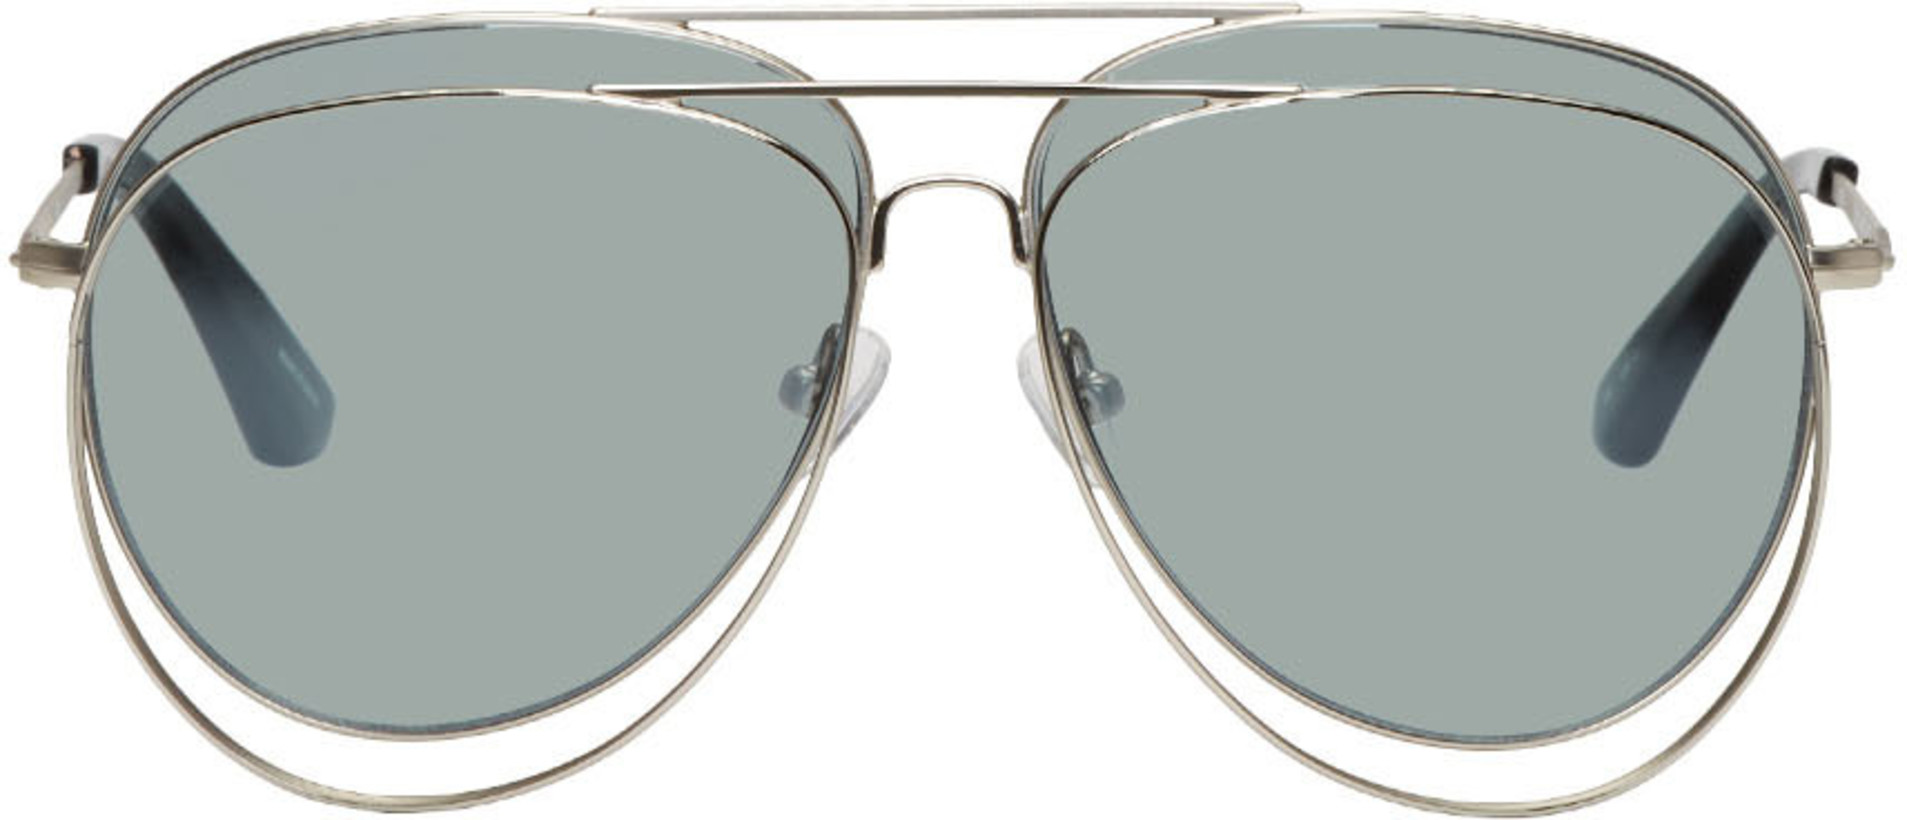 Bless Silver Linda Farrow Edition Double Sunglasses